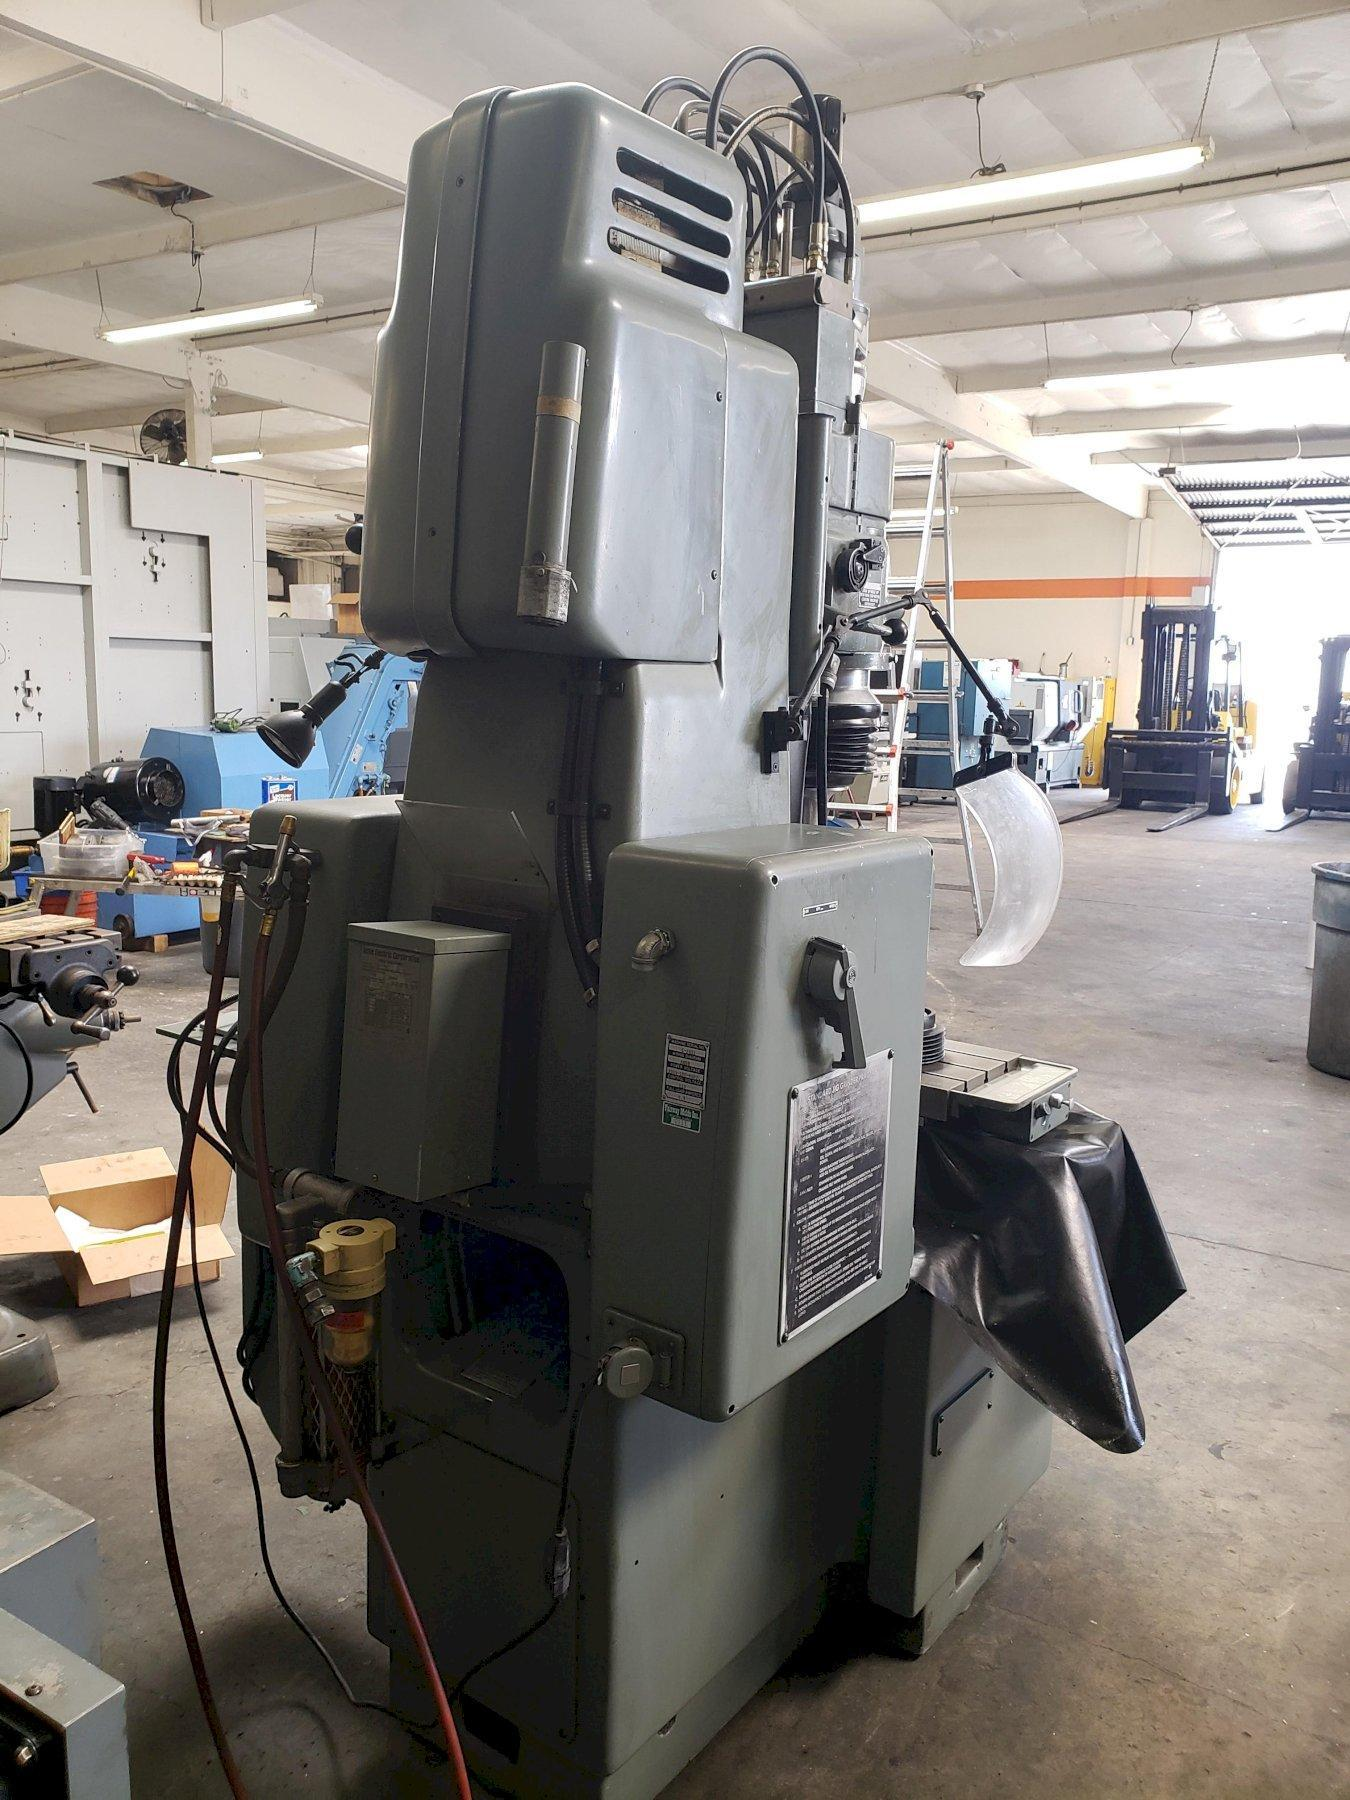 Moore G18 Jig Grinder with: Quadra-Check 100 Digital Readout, 40,000 RPM Grinding Head.